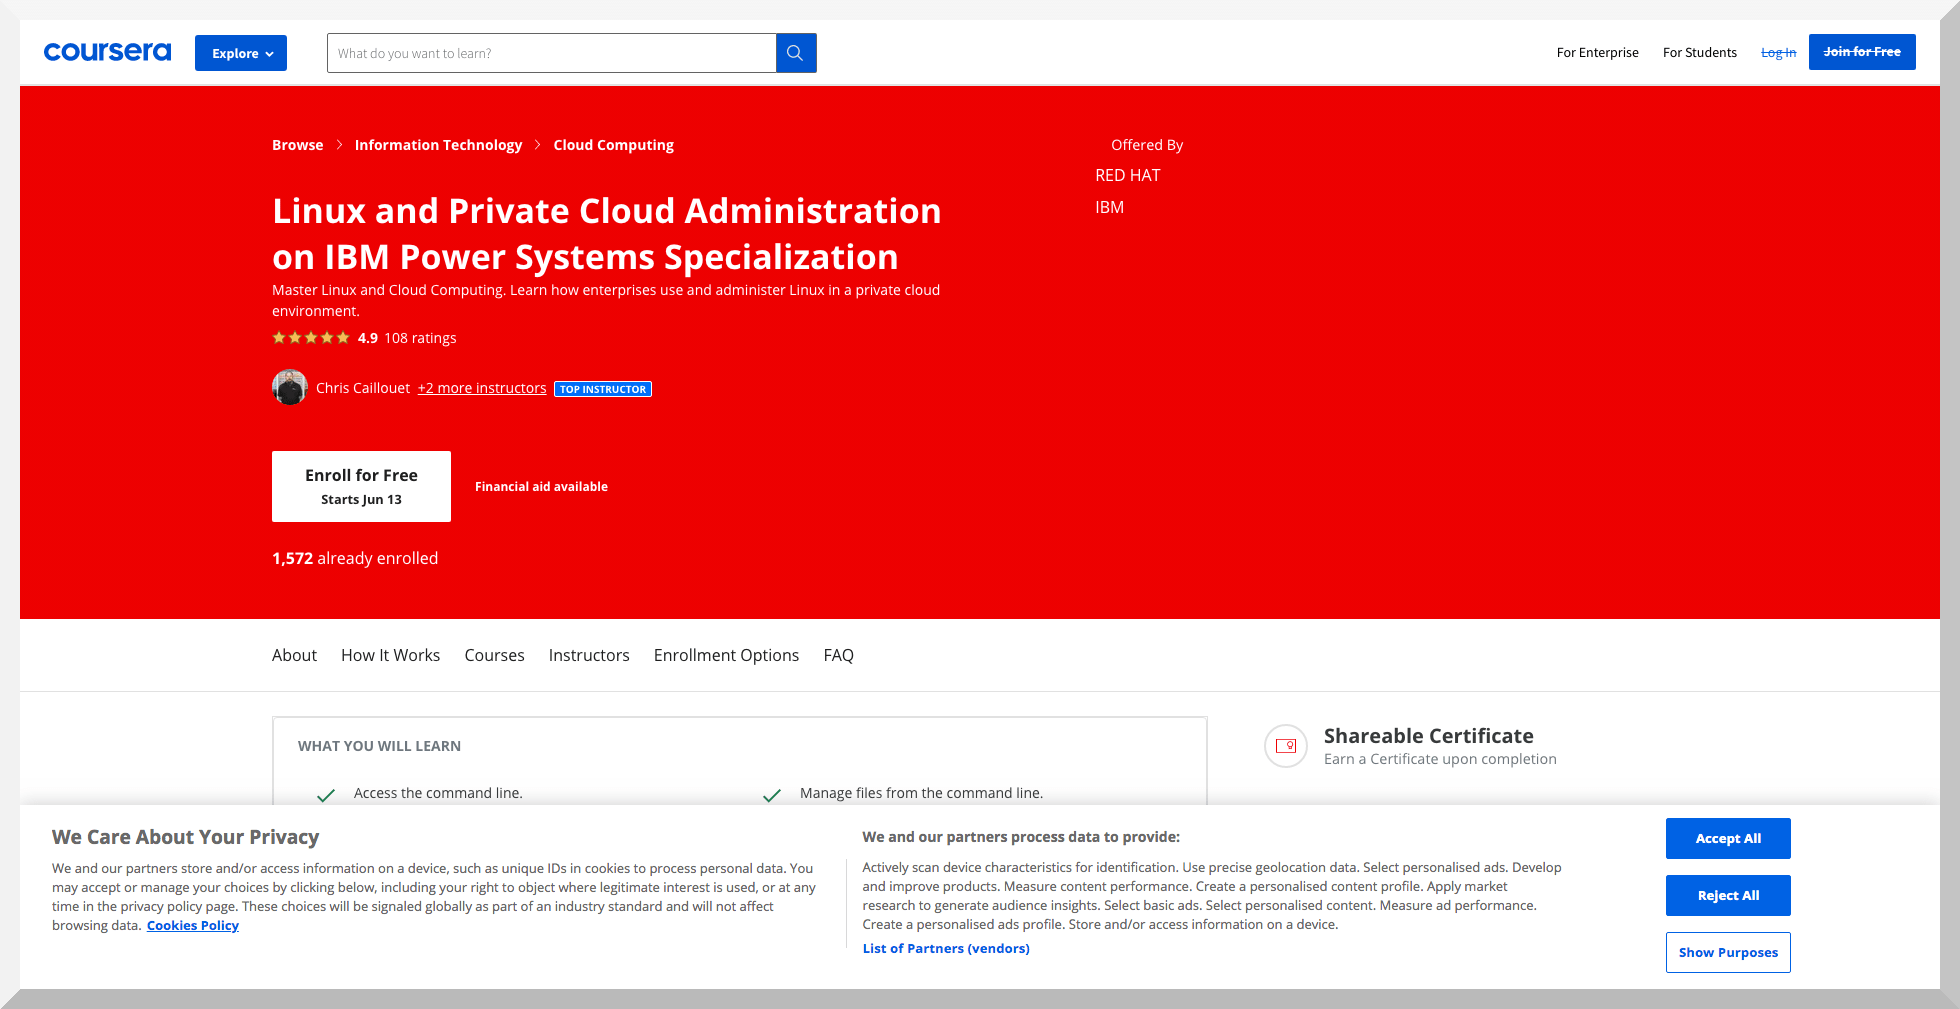 Linux and Private Cloud Administration on IBM Power Systems Specialization – Coursera